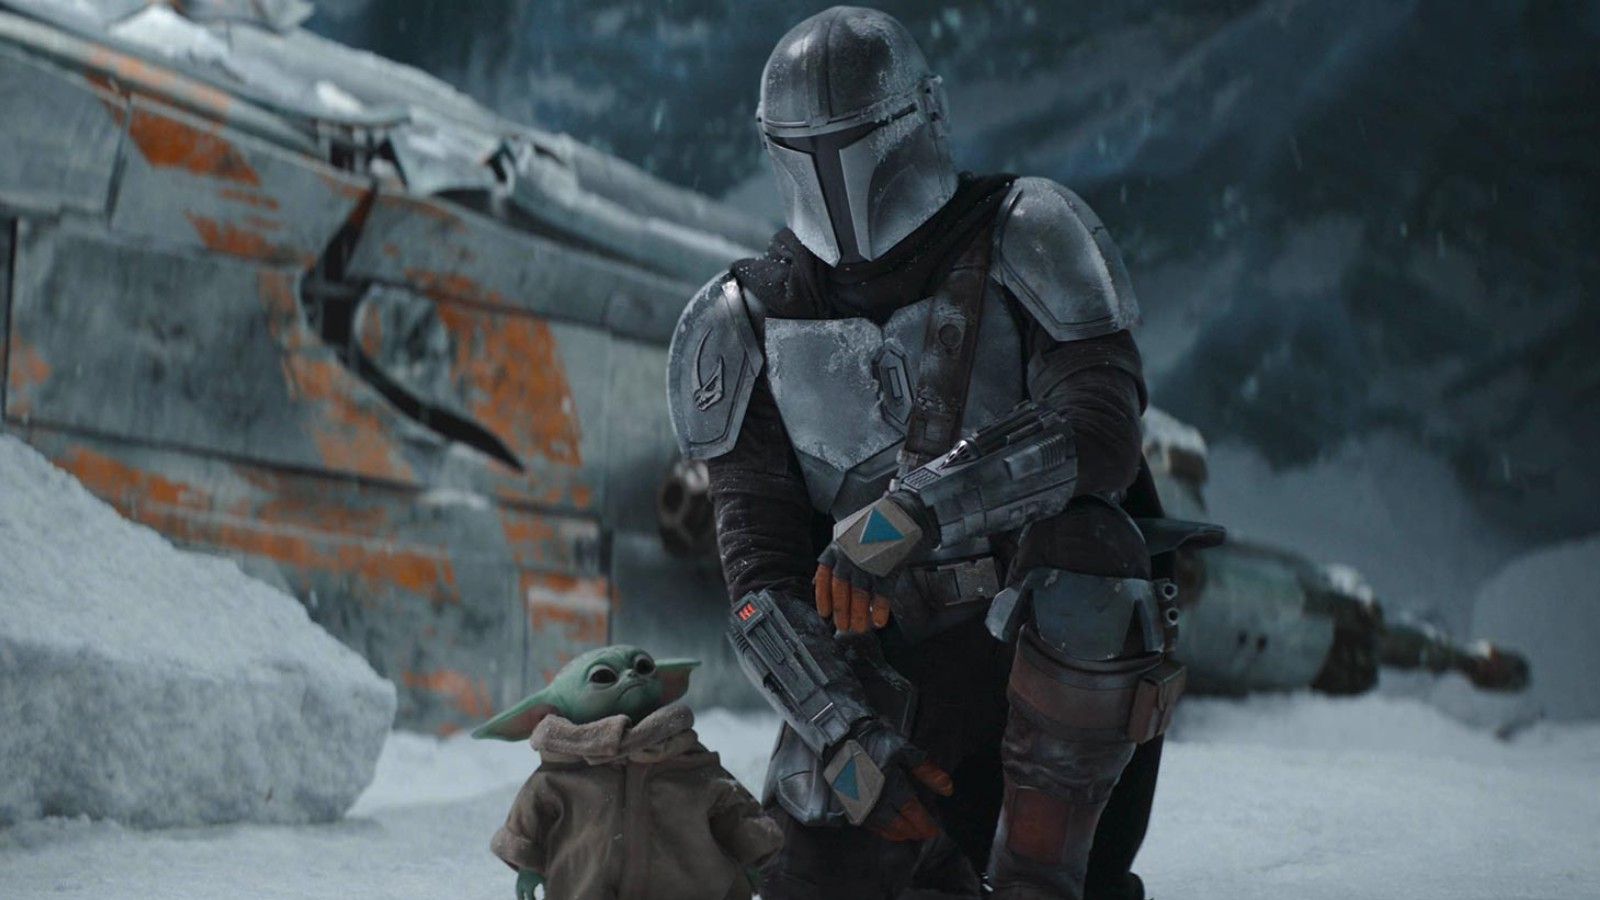 The Mandalorian and Baby Yoda in episode 2